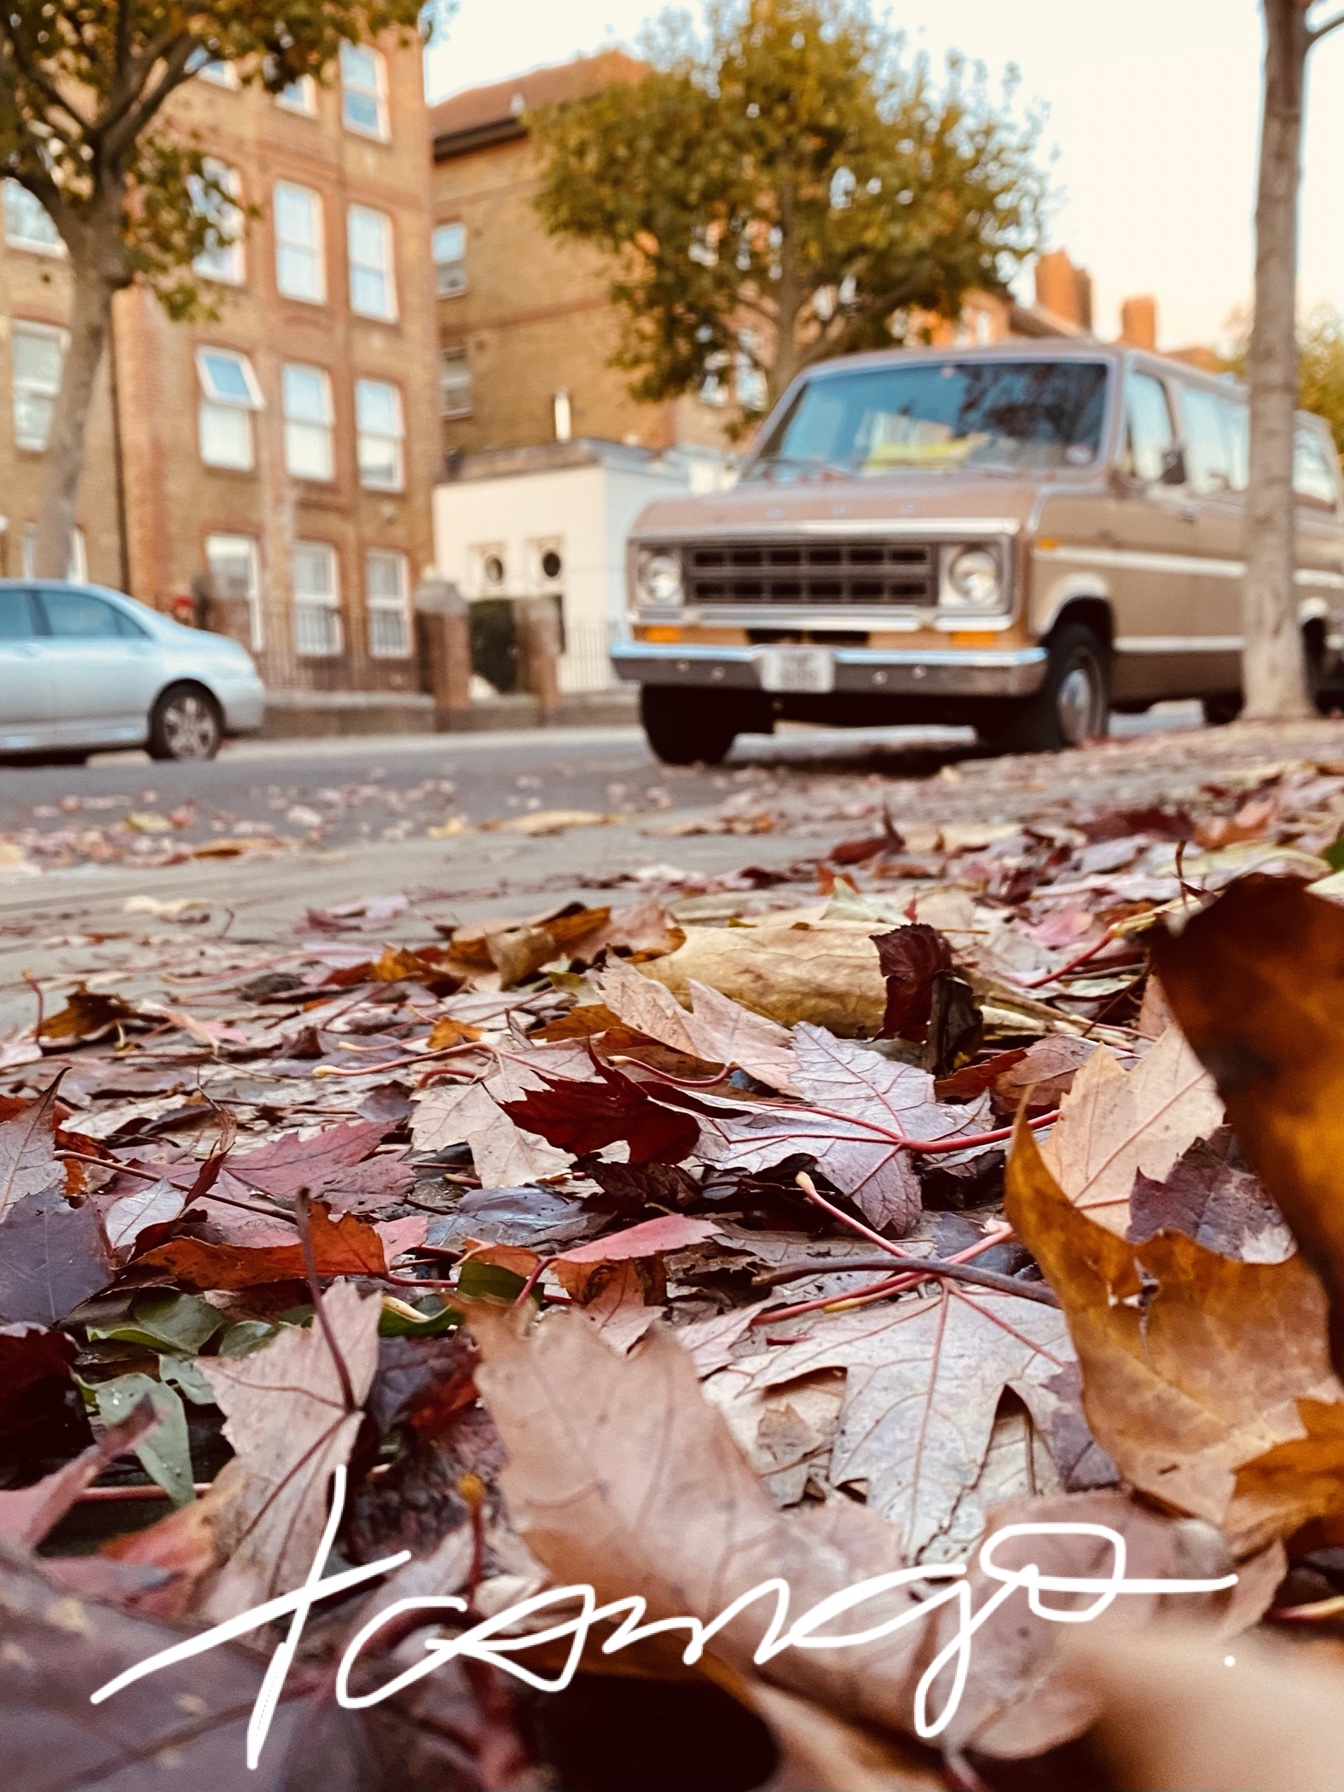 Autumn leaves and an old car in the back